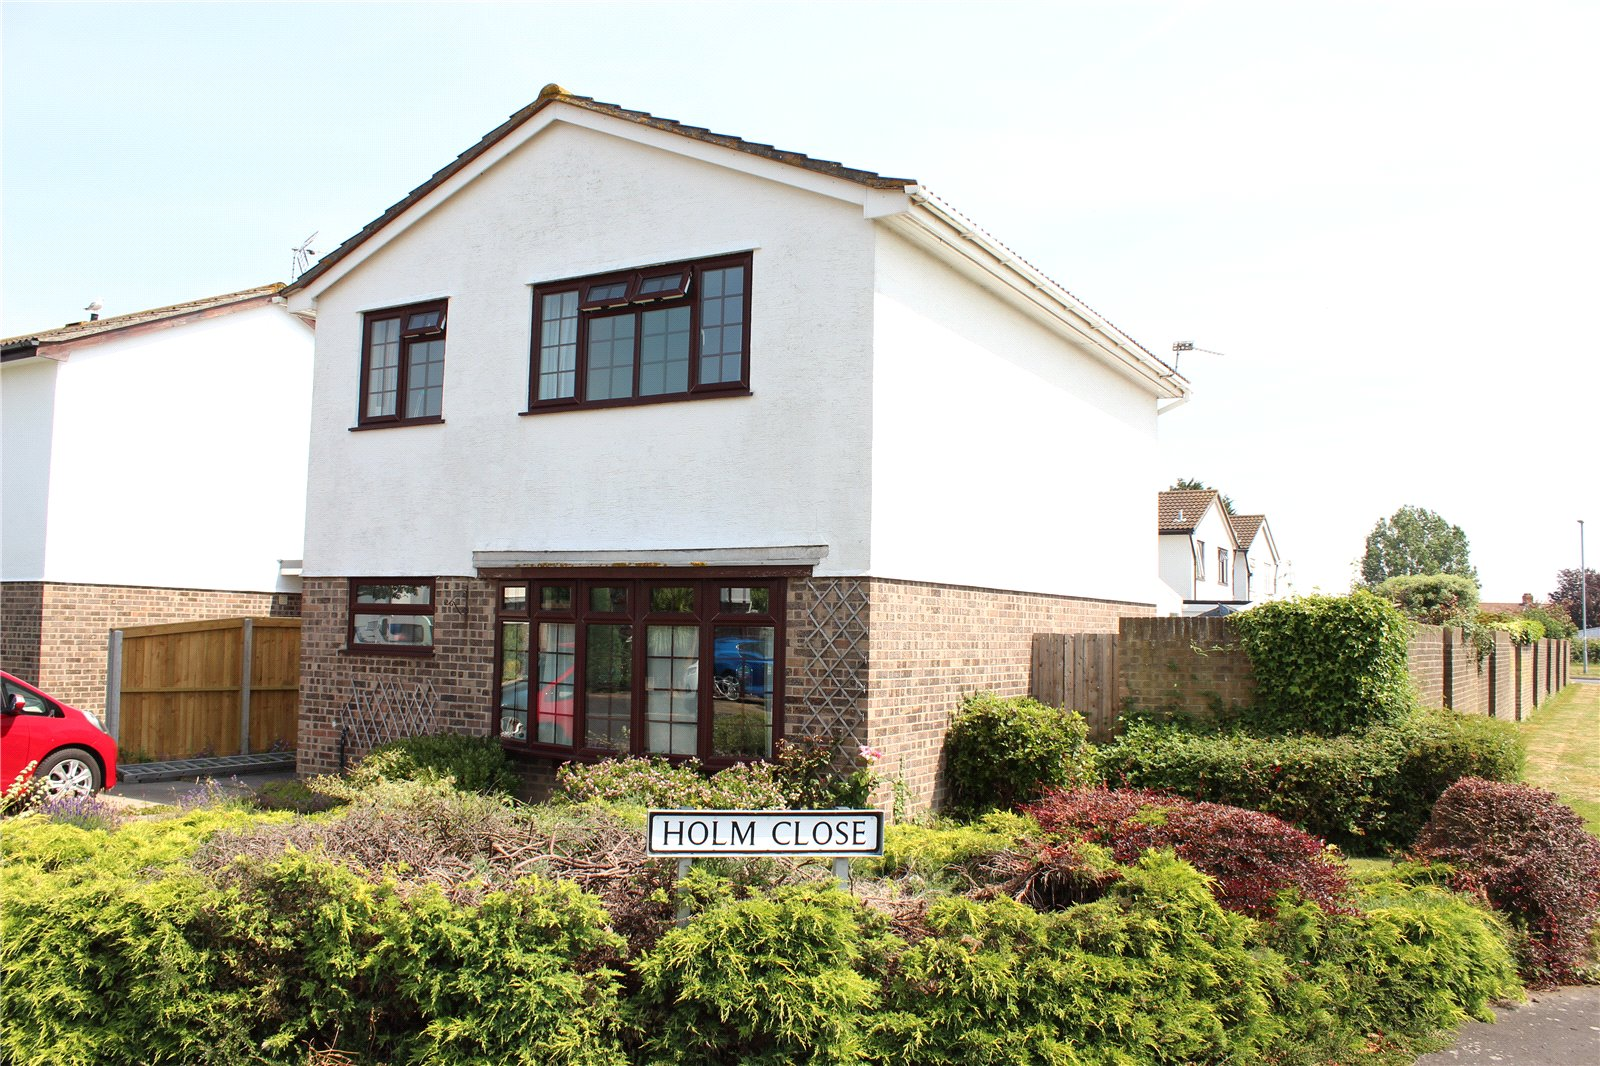 3 Bedrooms Detached House for sale in Holm Close Burnham on Sea Somerset TA8